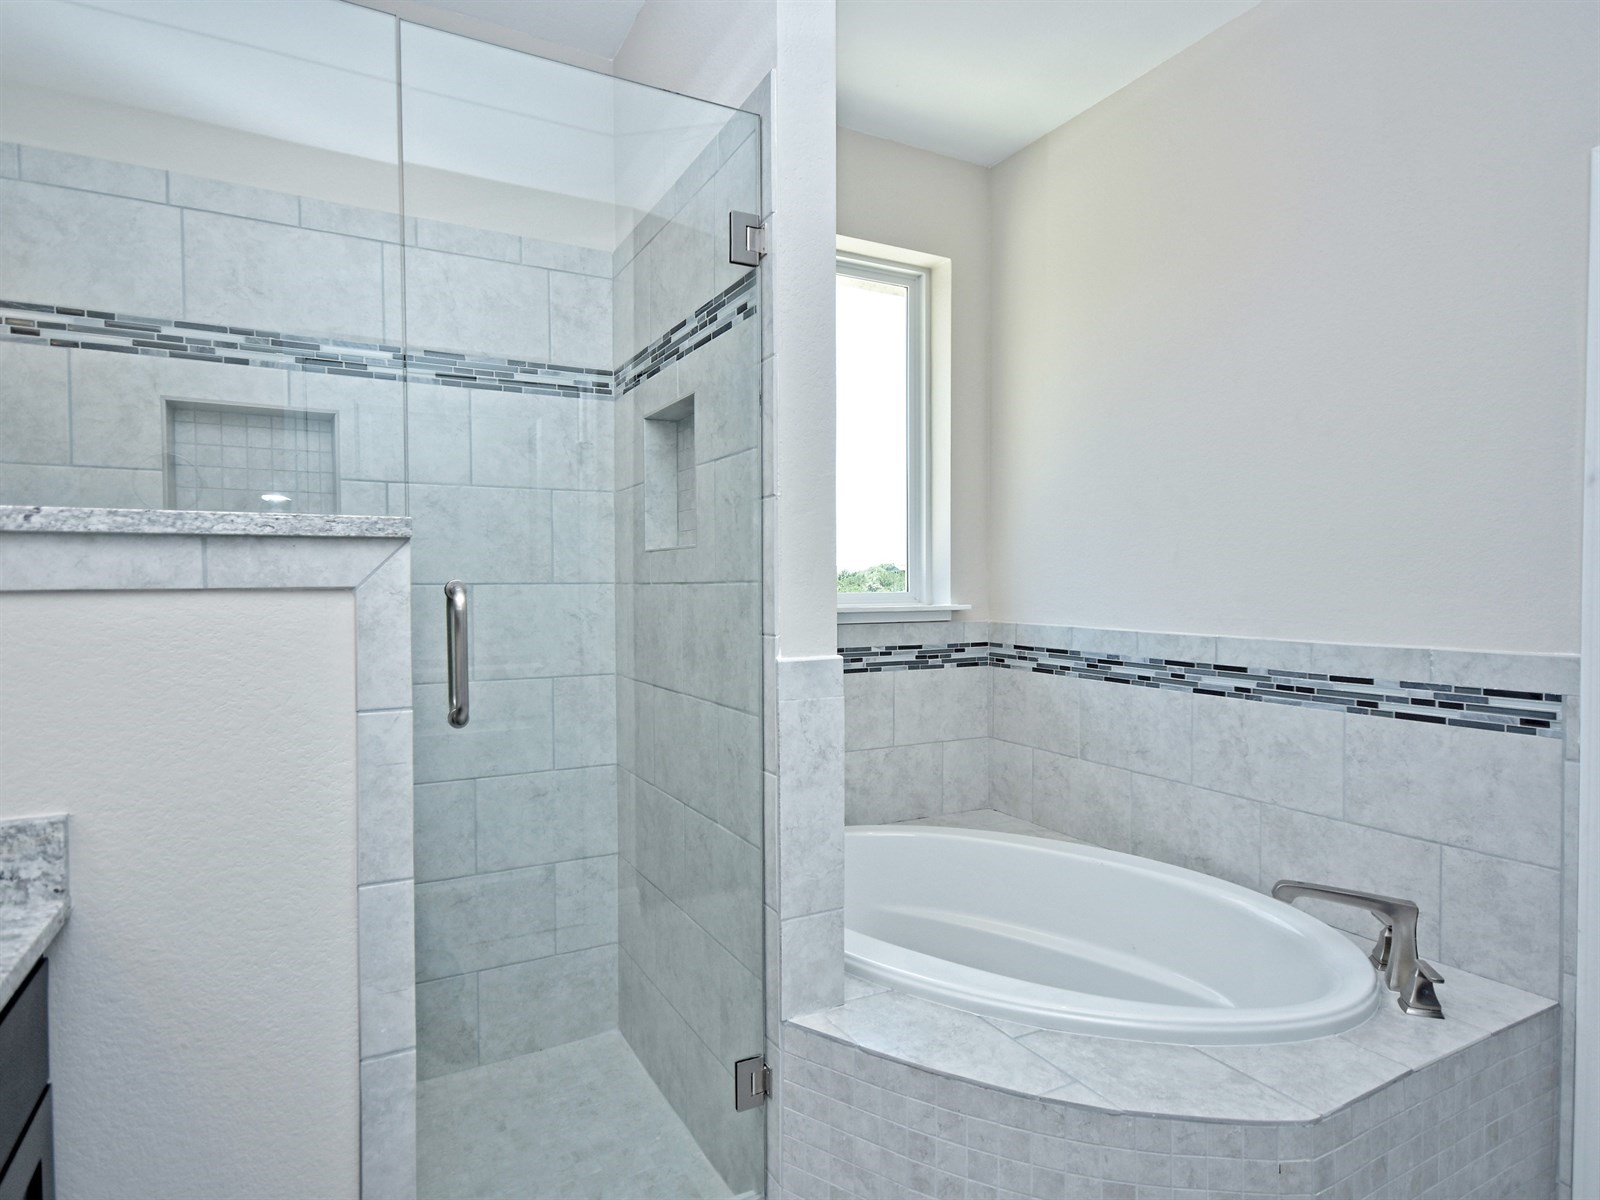 023_Master Bathroom 2.jpg